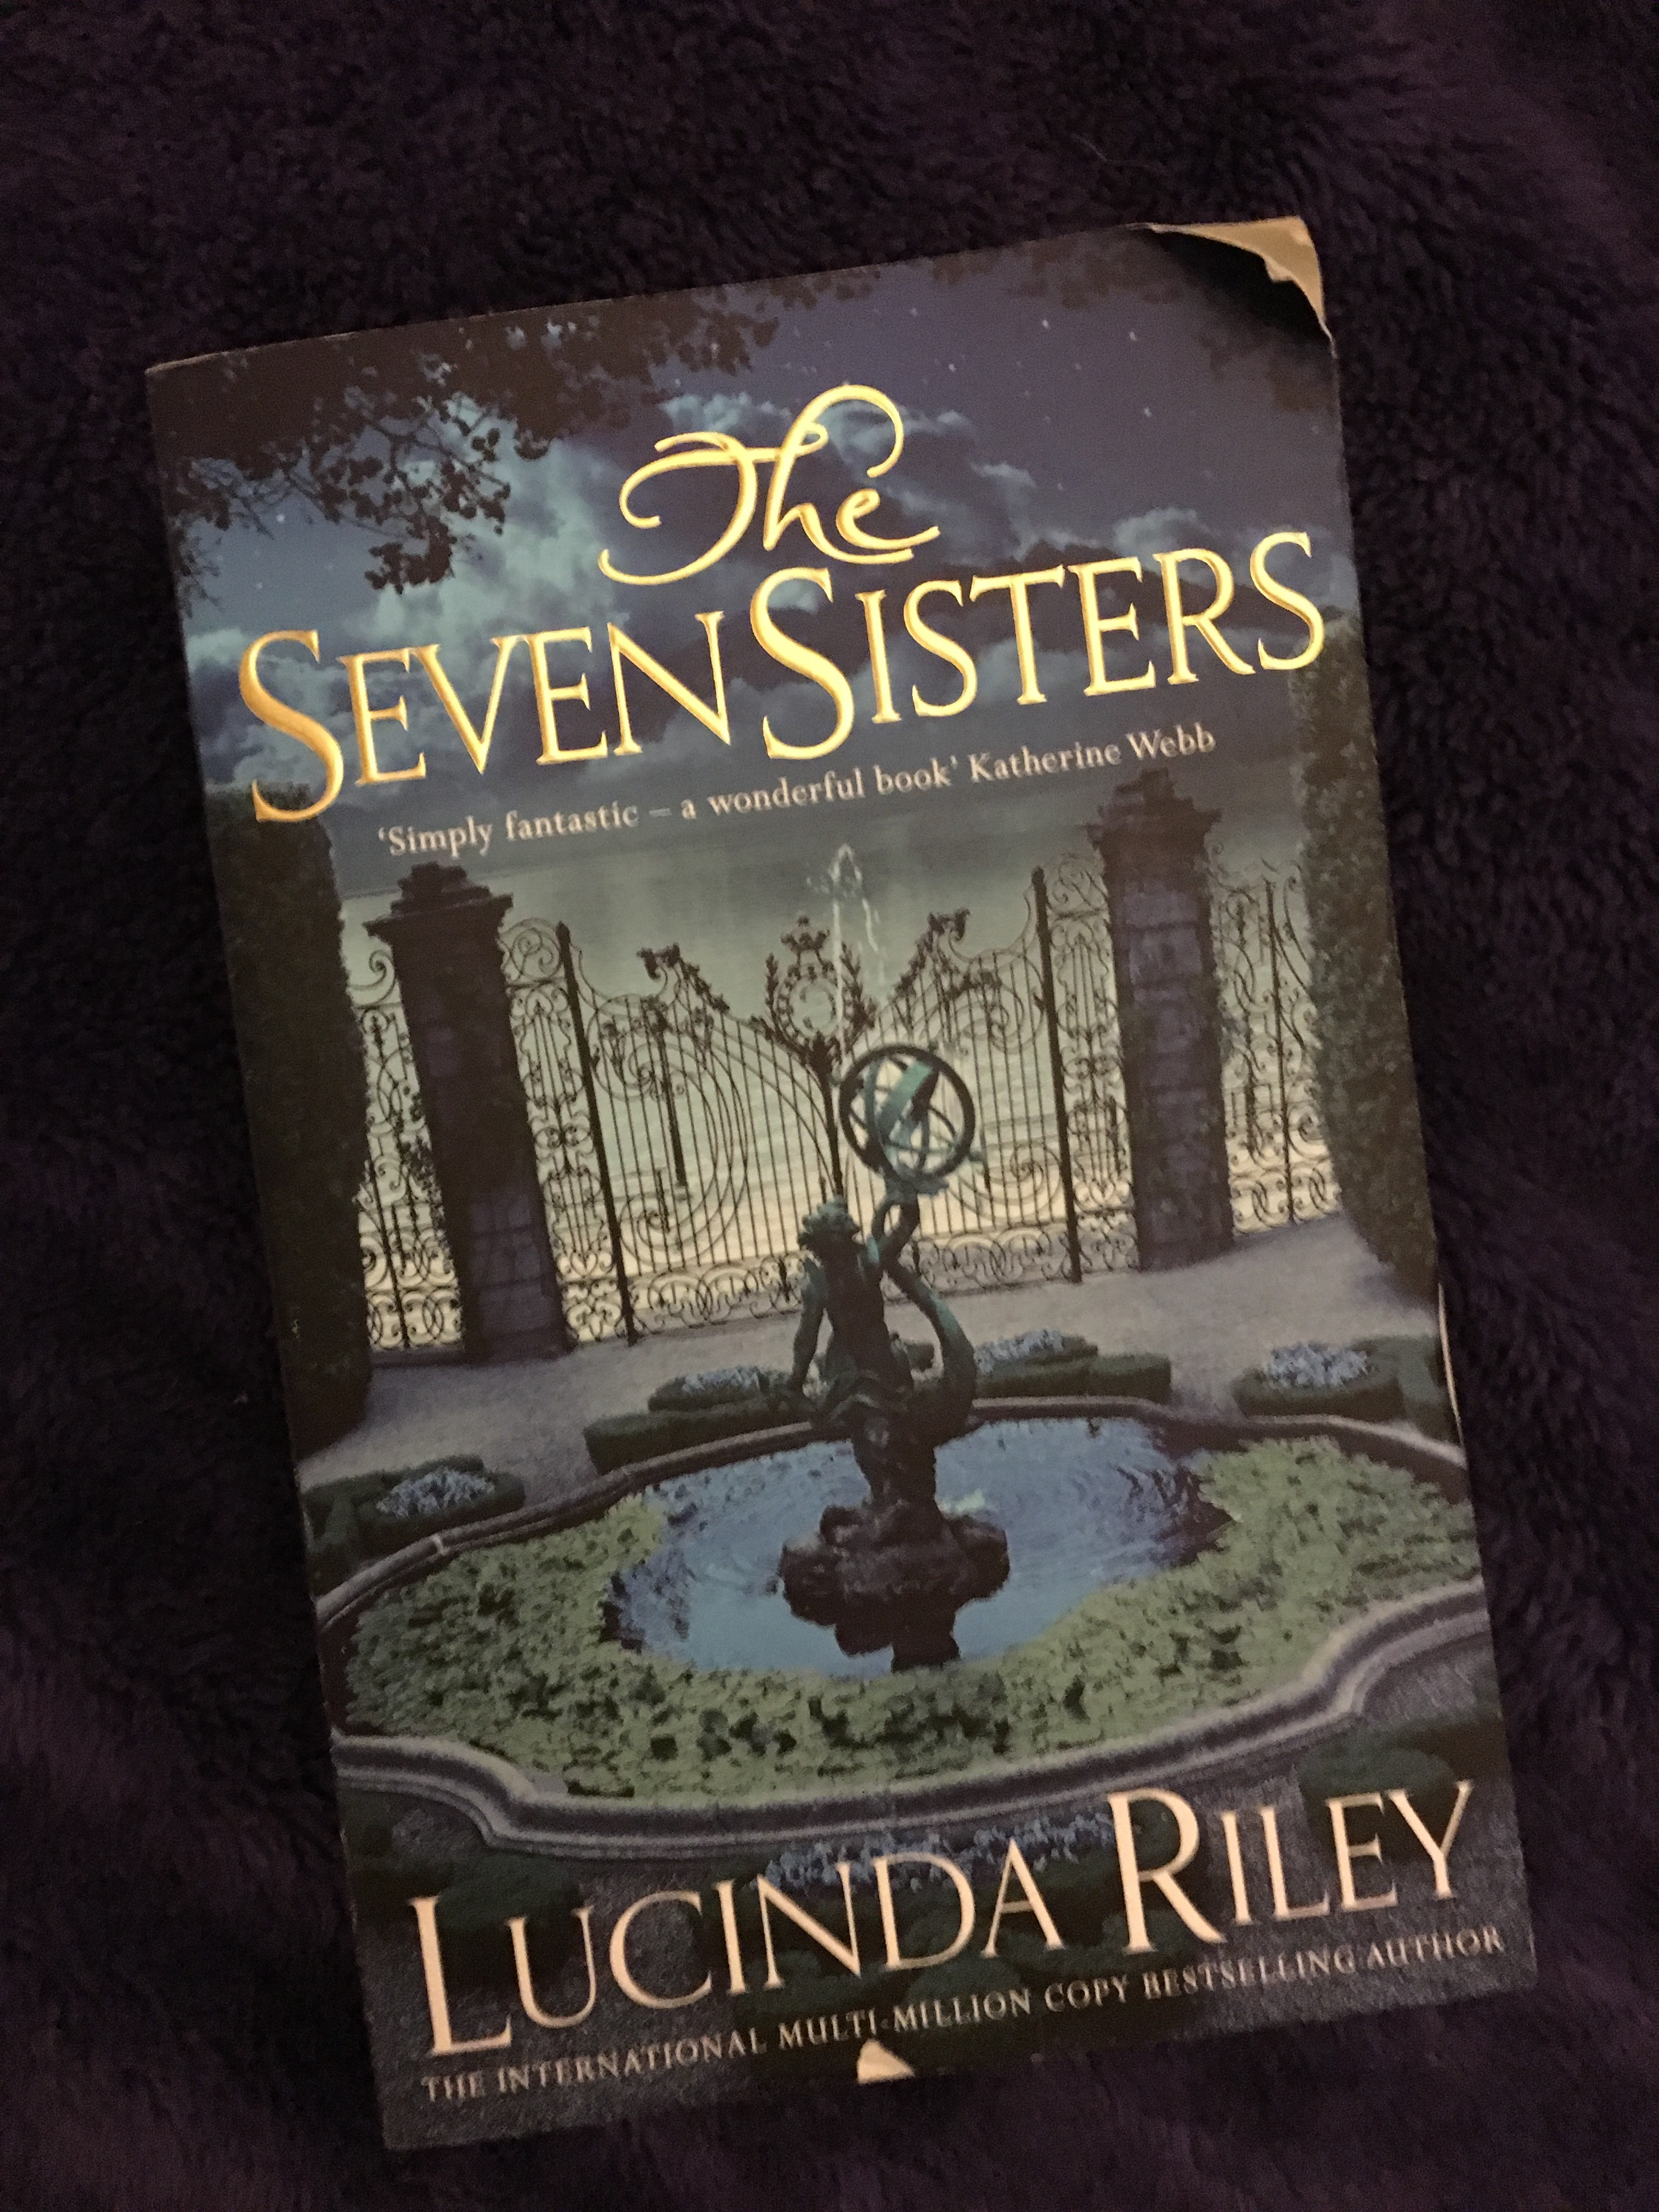 BOOK REVIEW: The Seven Sisters